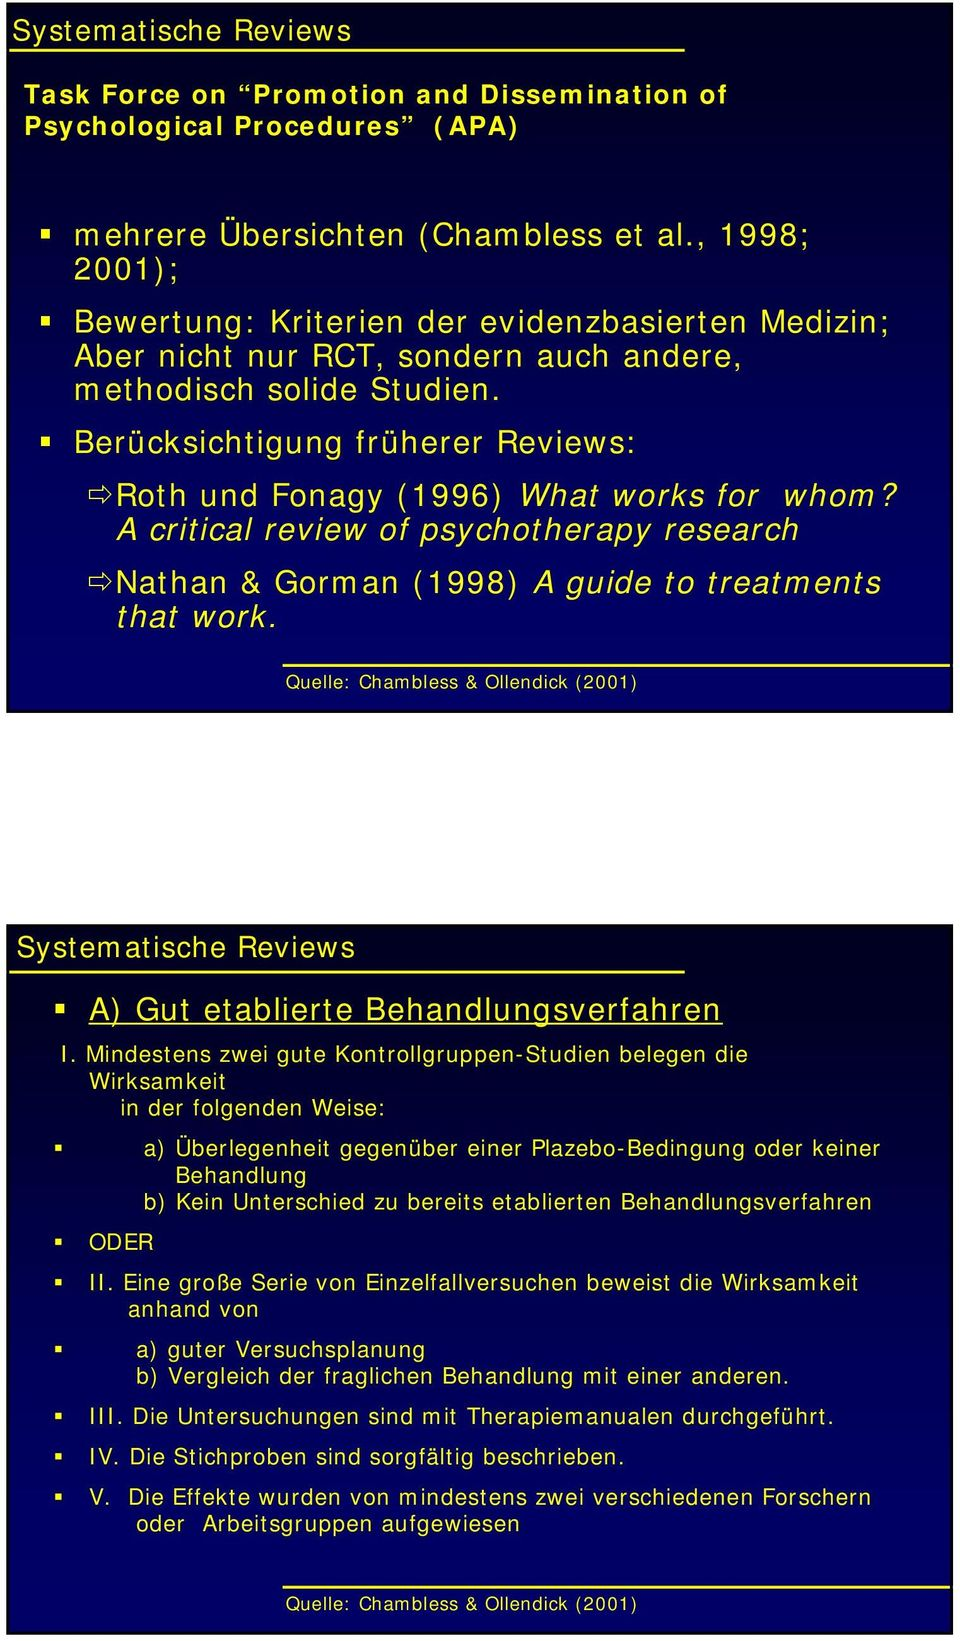 Berücksichtigung früherer Reviews: Roth und Fonagy (1996) What works for whom? A critical review of psychotherapy research Nathan & Gorman (1998) A guide to treatments that work.